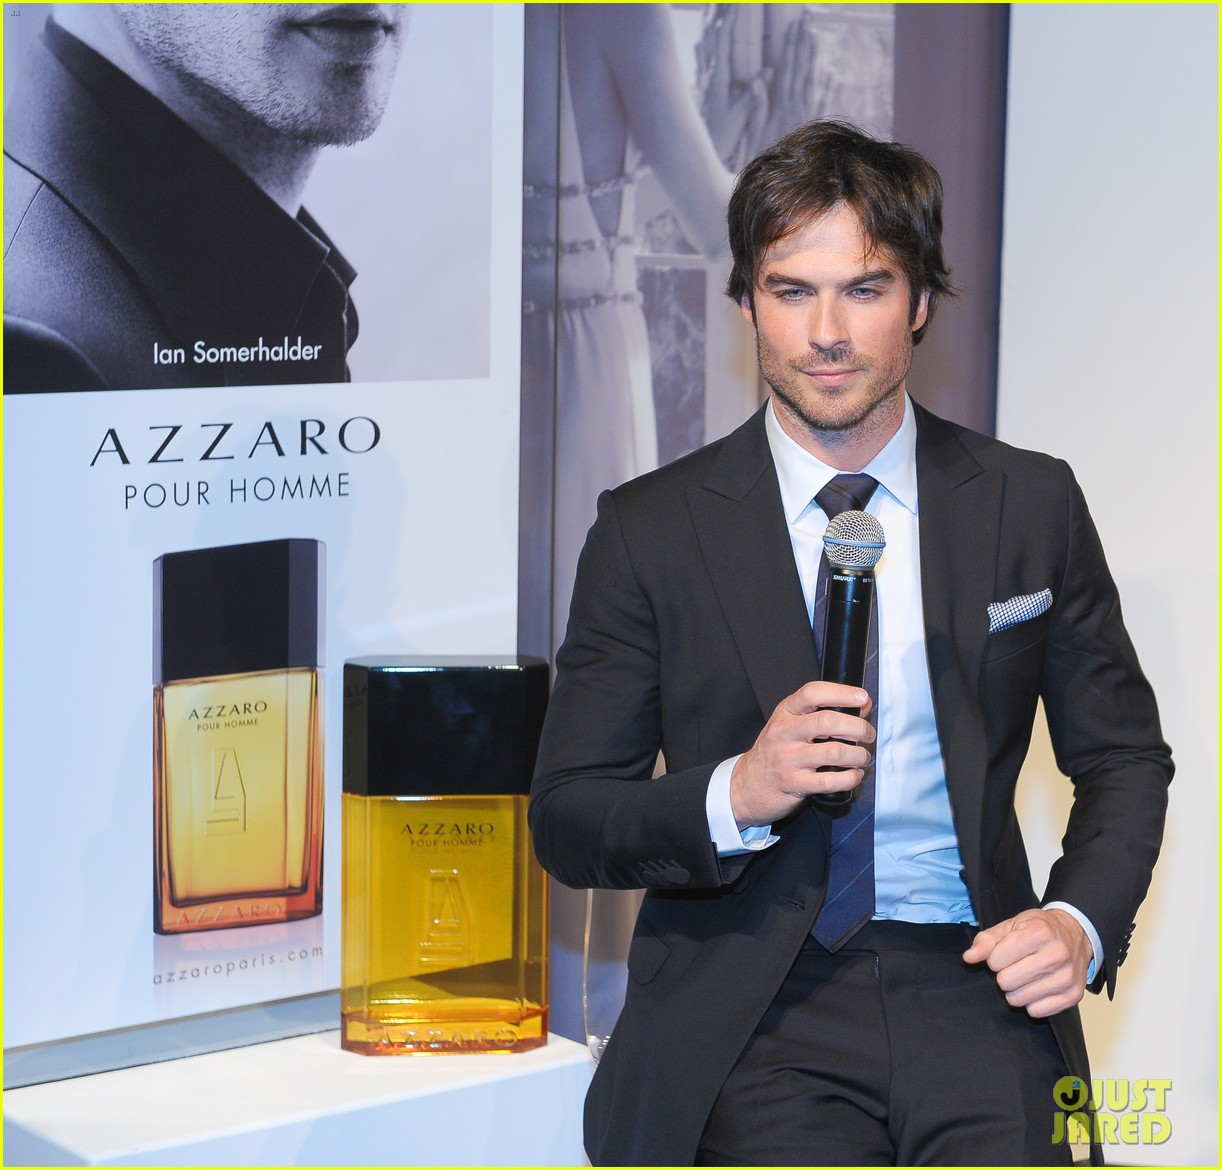 ian somerhalder looks super sexy in his suit and tie 133113768